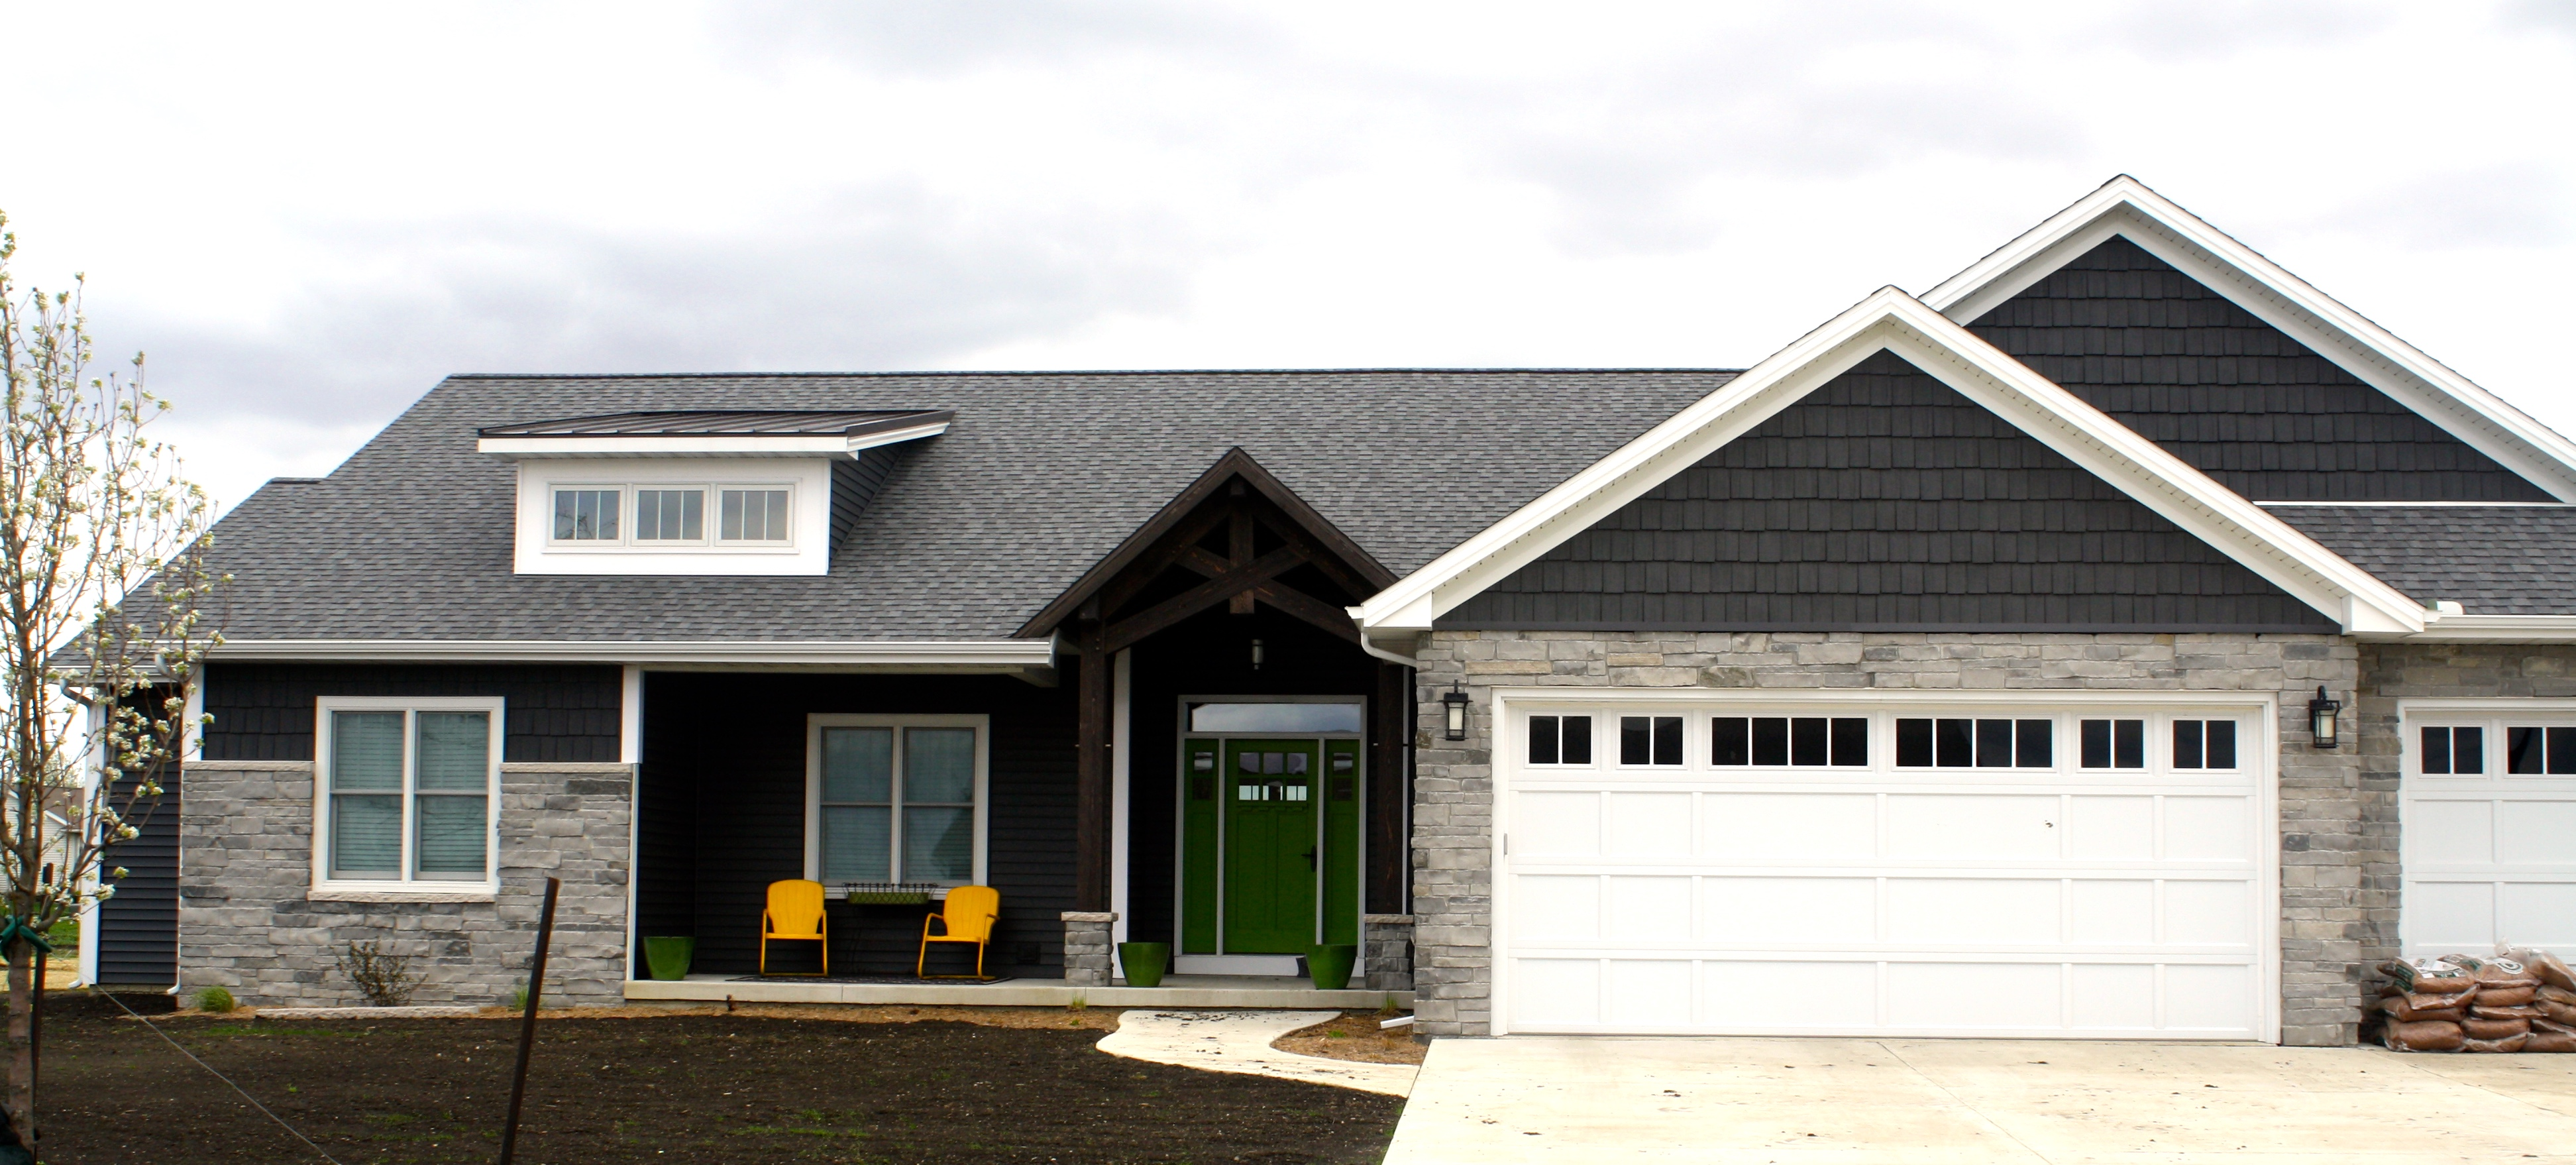 Garage Door Parts El Paso Ironstone Dark Grey Siding With Pewter Grey Shingles And White